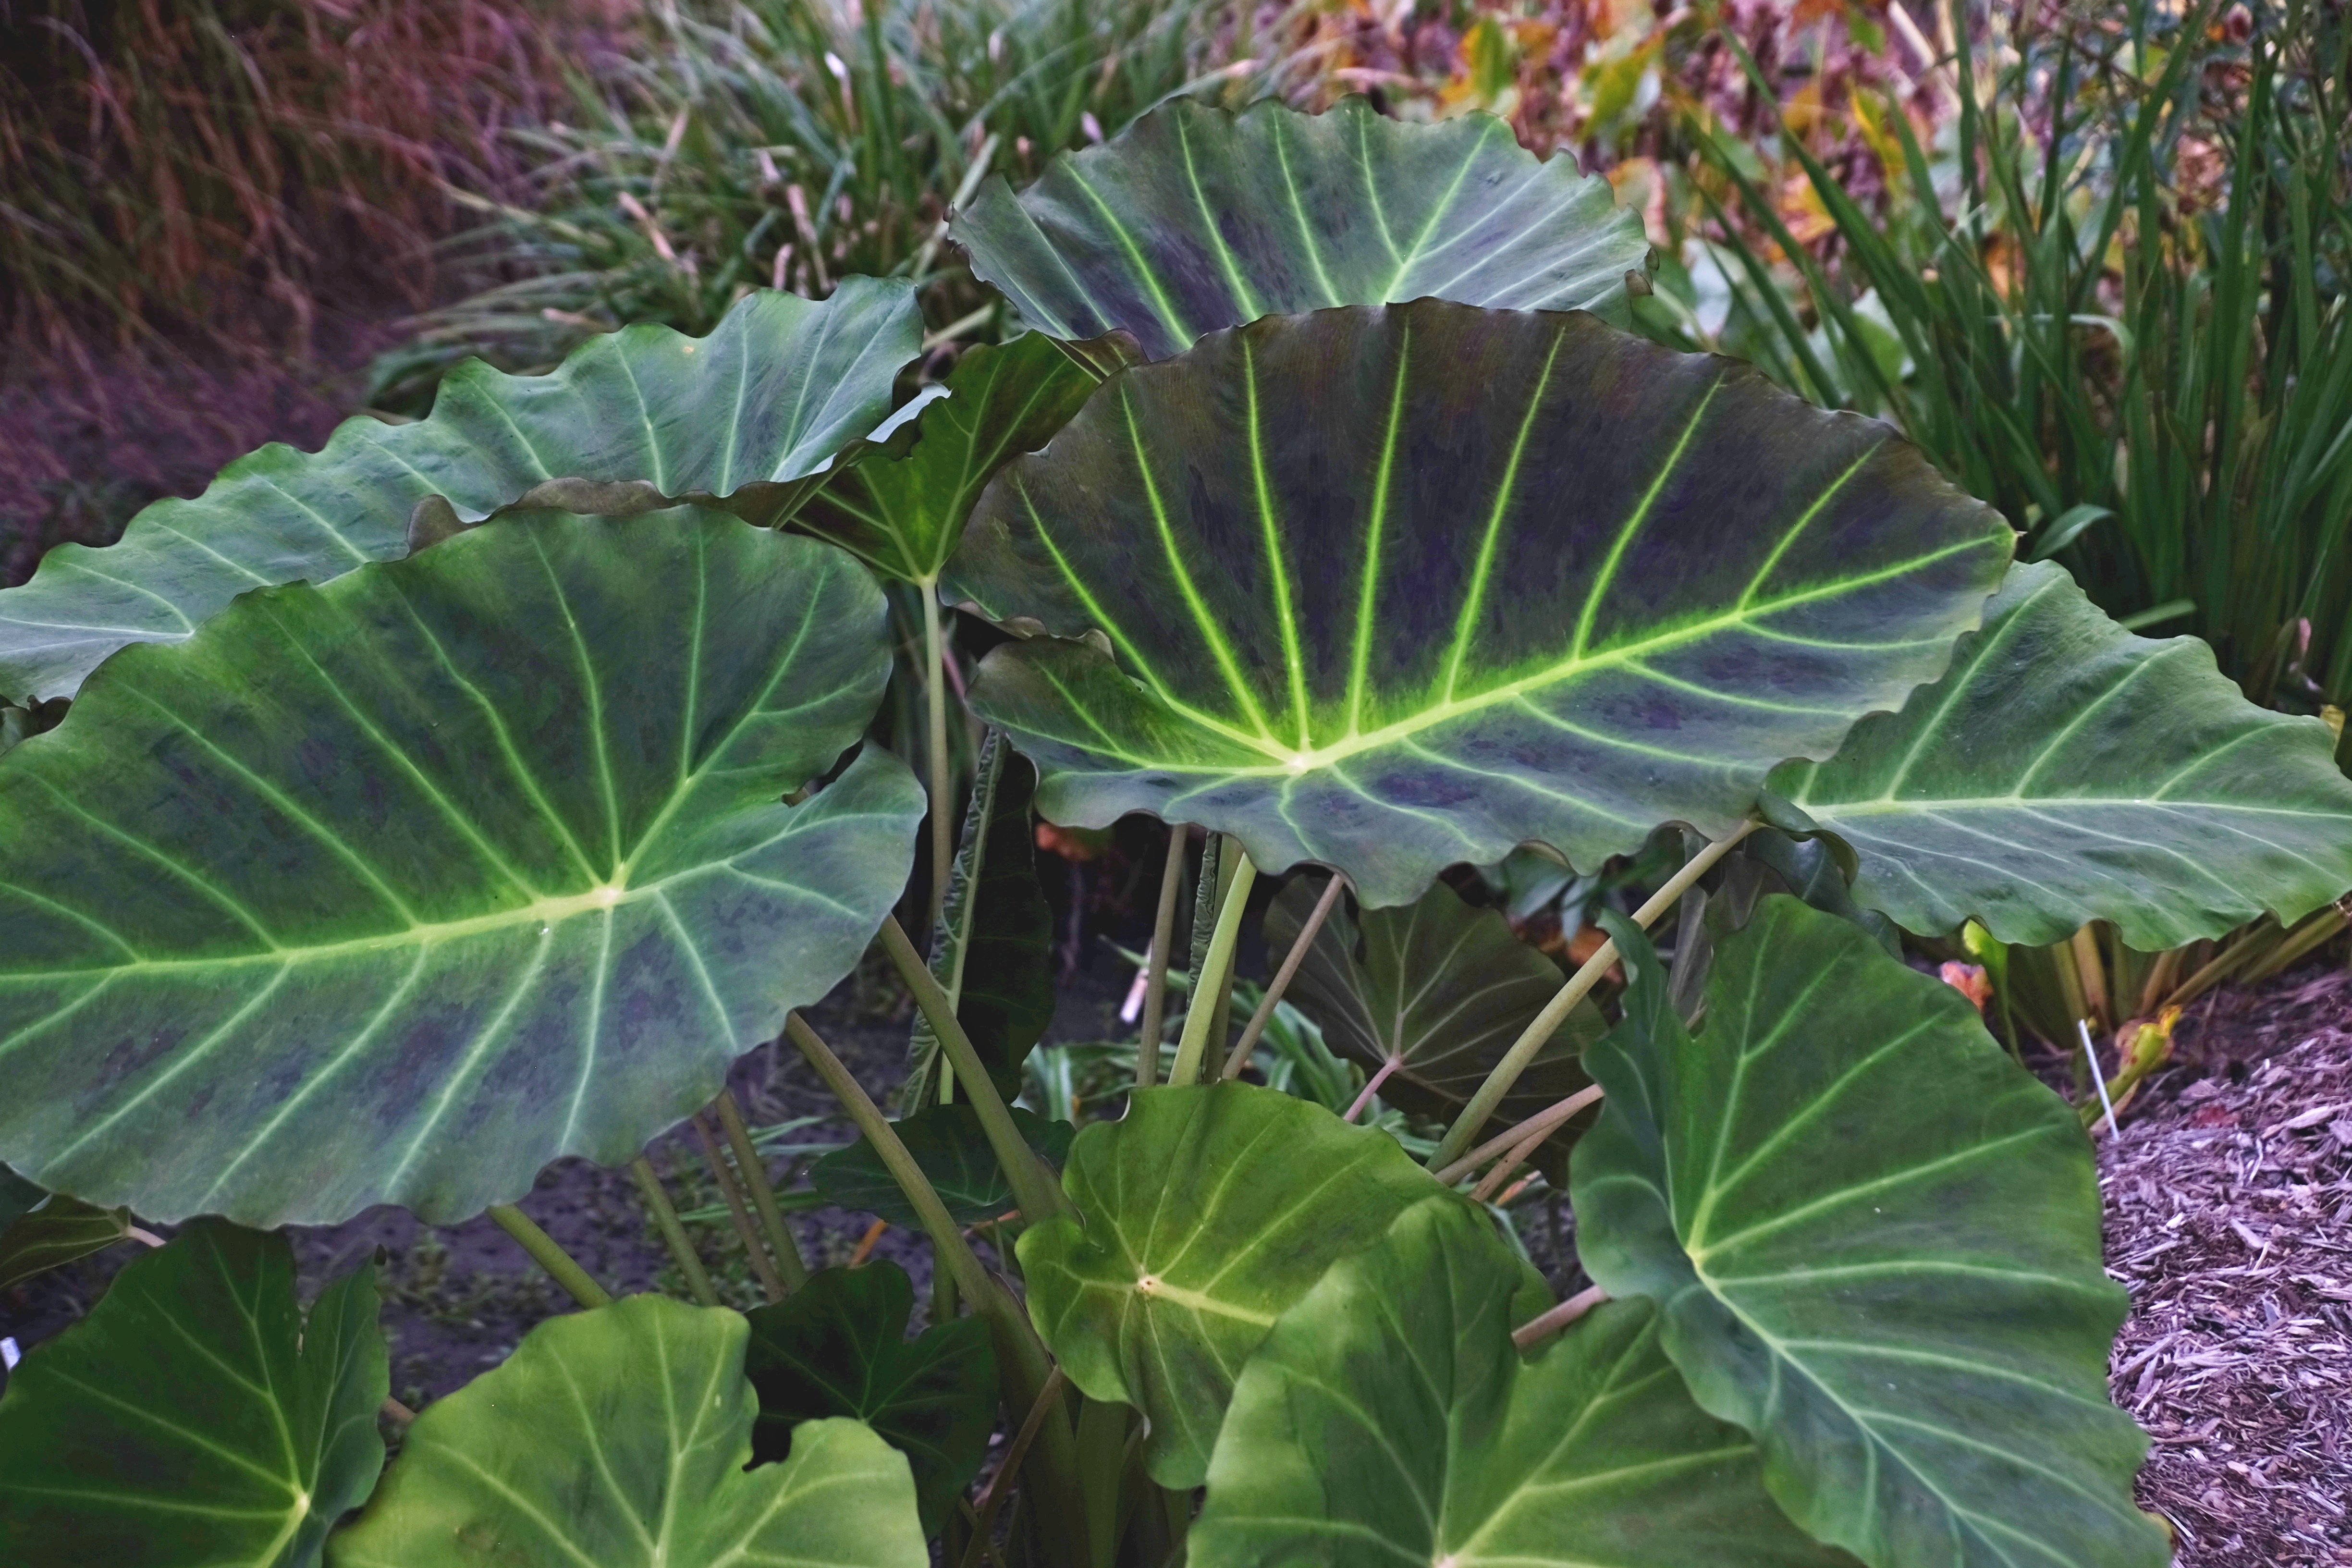 xLeucocolocasia 'Imperial Gigante' PP 26,152 @ JLBG - a Brian Williams introduction of a cross of Colocasia esculenta x Leucocasia (Colocasia) gigantea